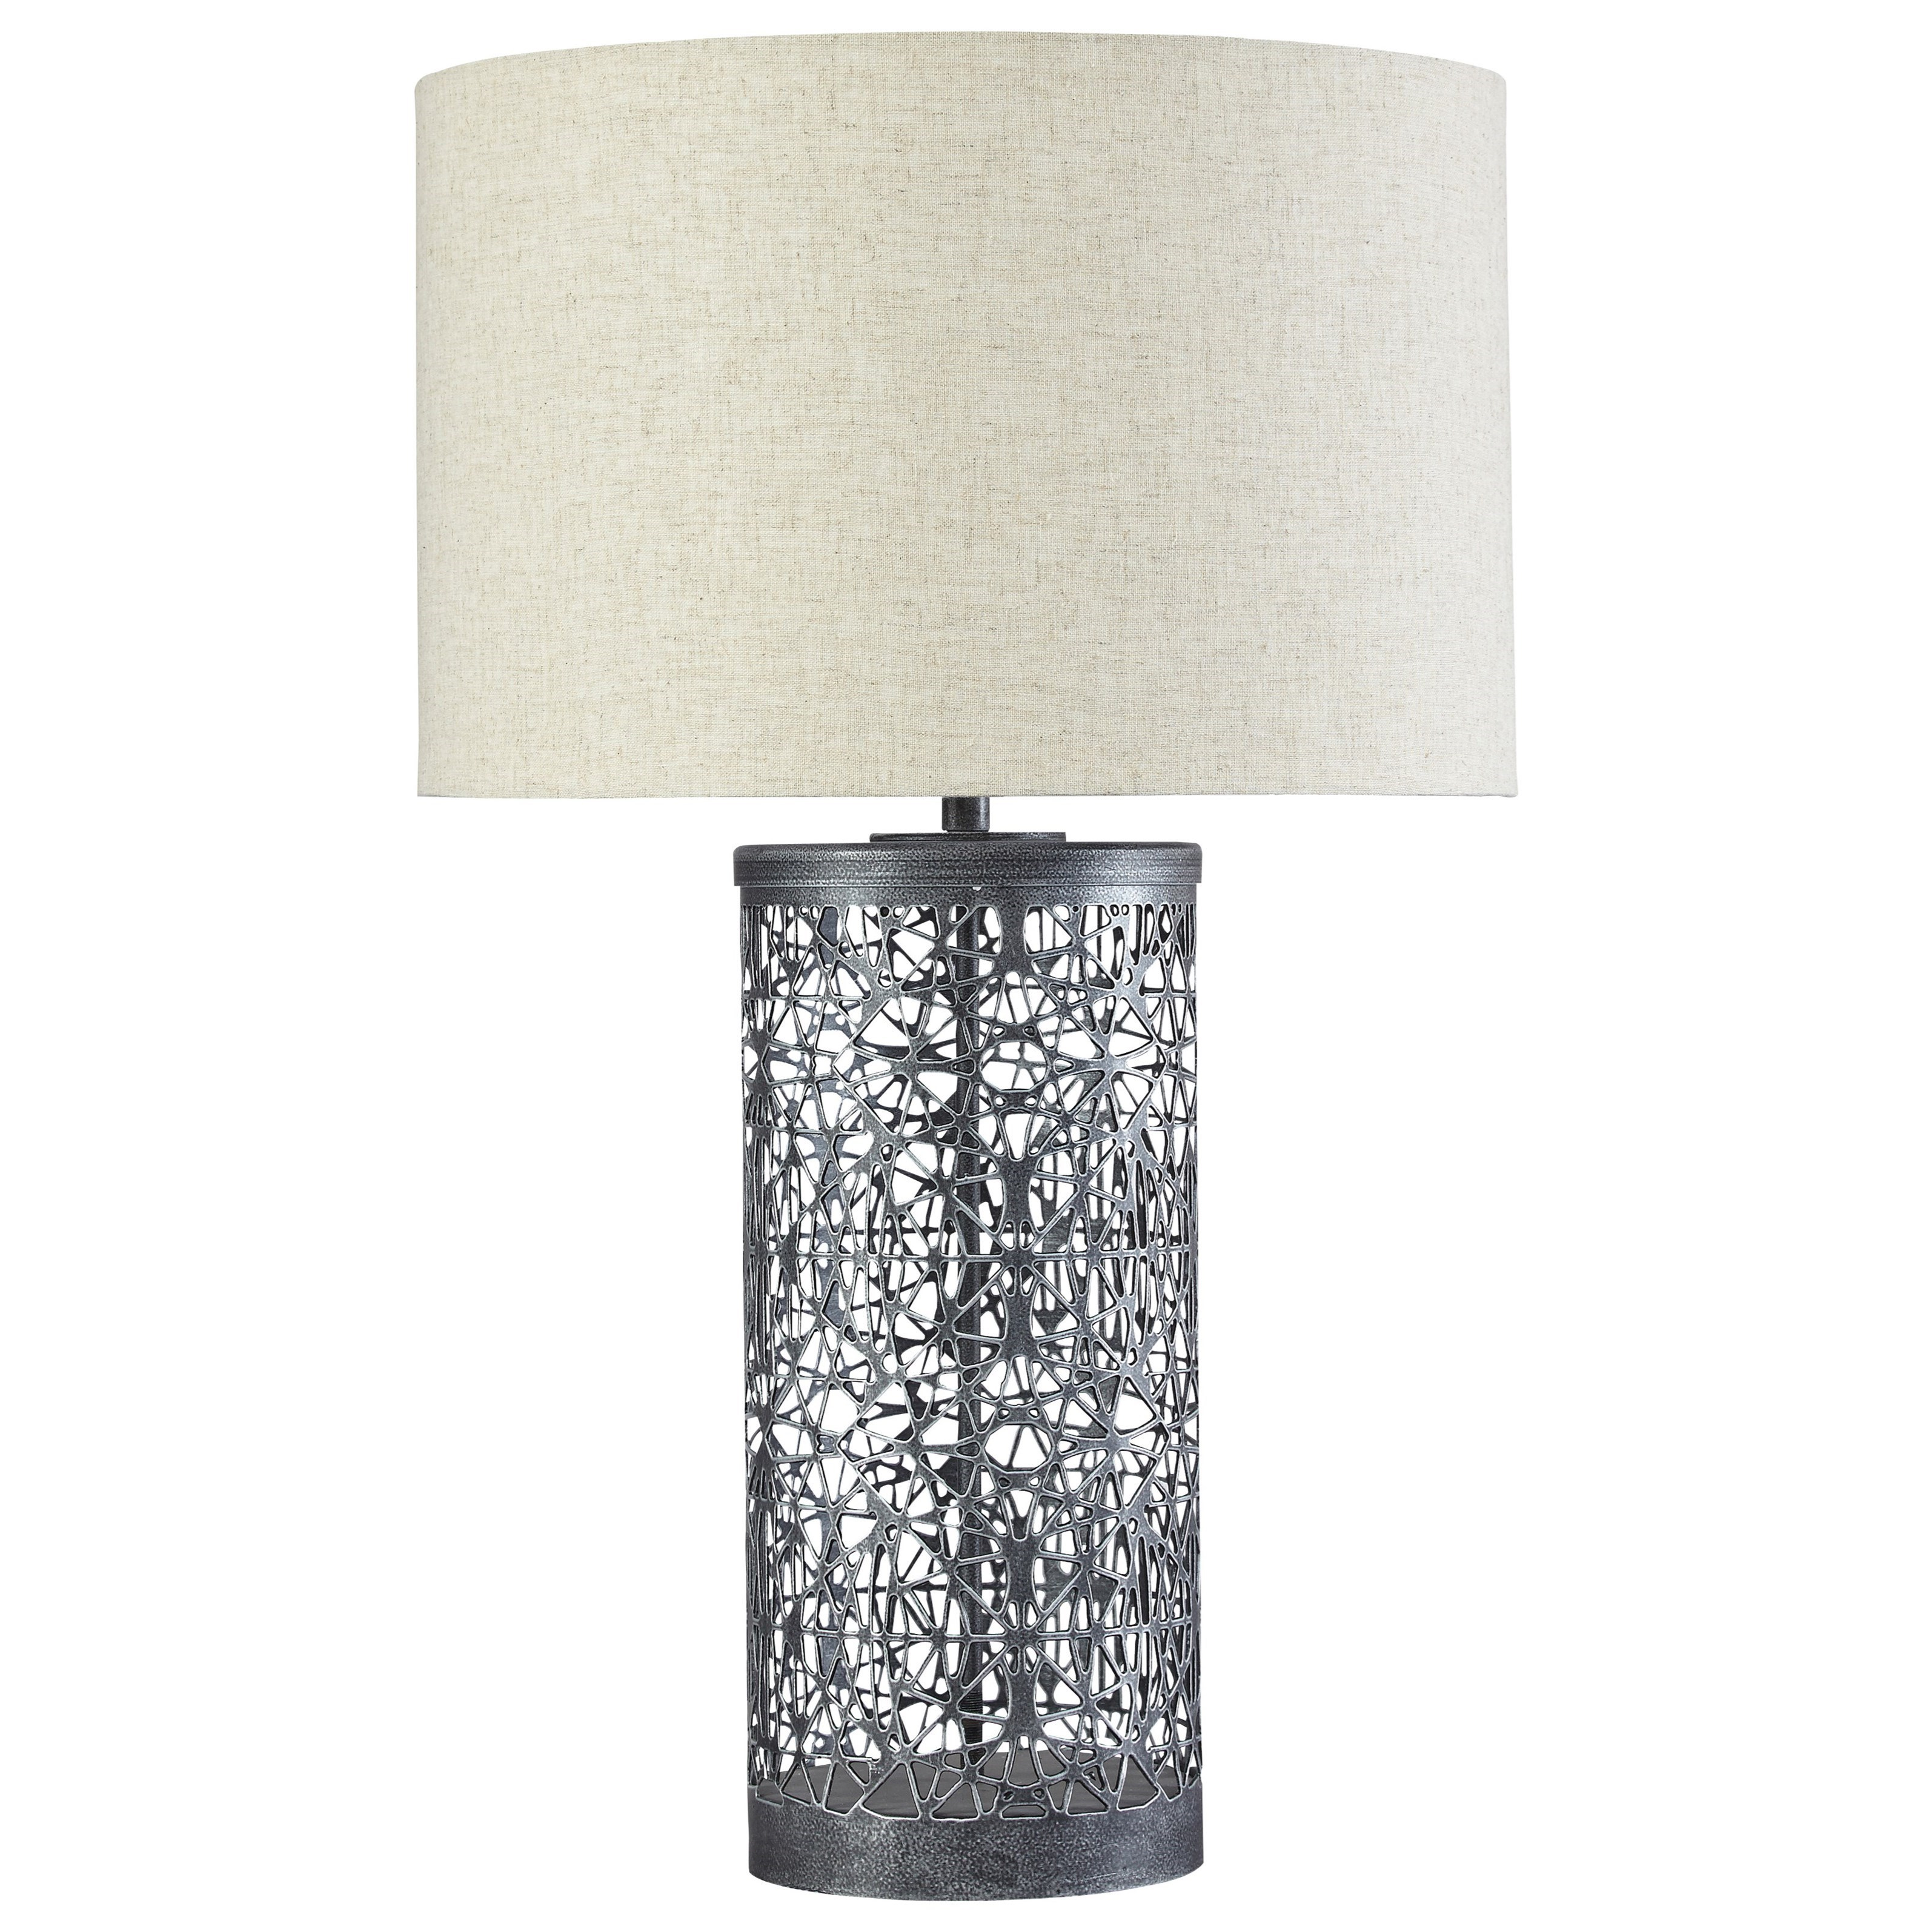 Signature Design by Ashley Lamps - Contemporary Traci Antique Black Table Lamp - Item Number: L207084